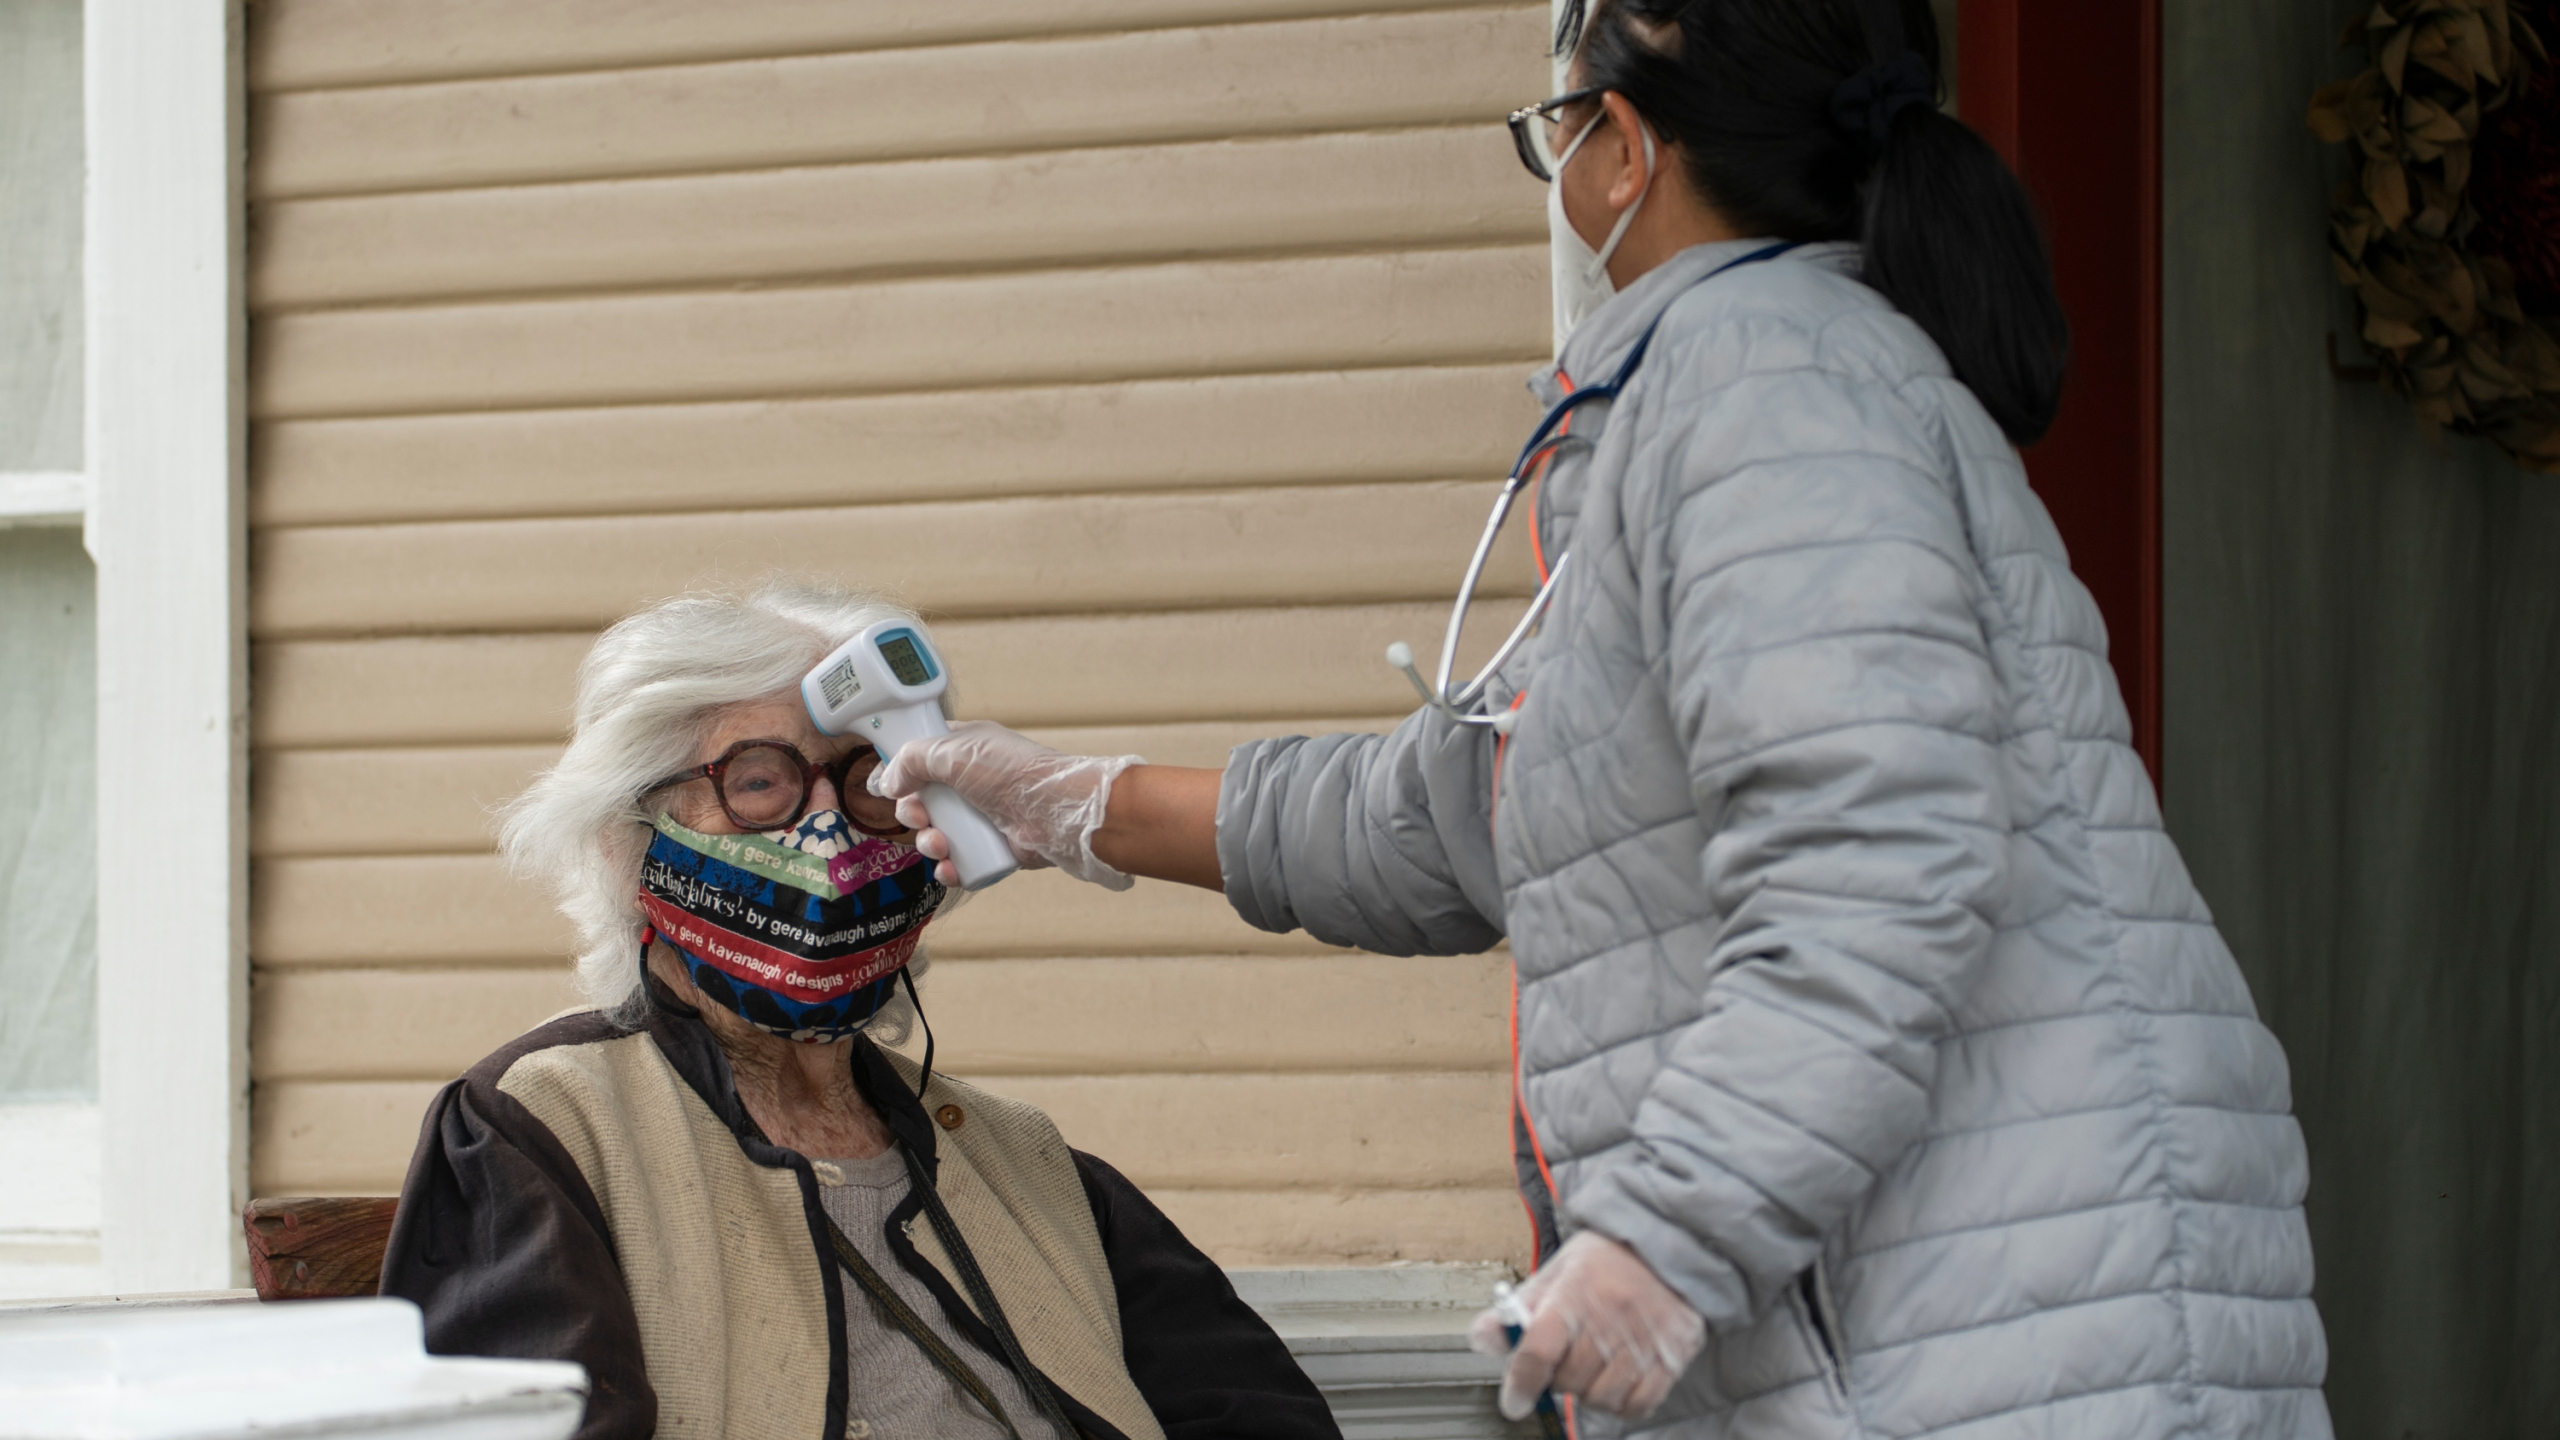 Designer Gere Kavanaugh, left, wears a face mask of her design in the Echo Park neighborhood of Los Angeles, Monday, May 17, 2021. At right, Silver Age Home Health licensed vocational nurse Daisy Cabaluna monitors her temperature during a weekly outdoors visit at her home. California is keeping its rules for wearing face masks in place until the state more broadly lifts its pandemic restrictions on June 15. (AP Photo/Damian Dovarganes)